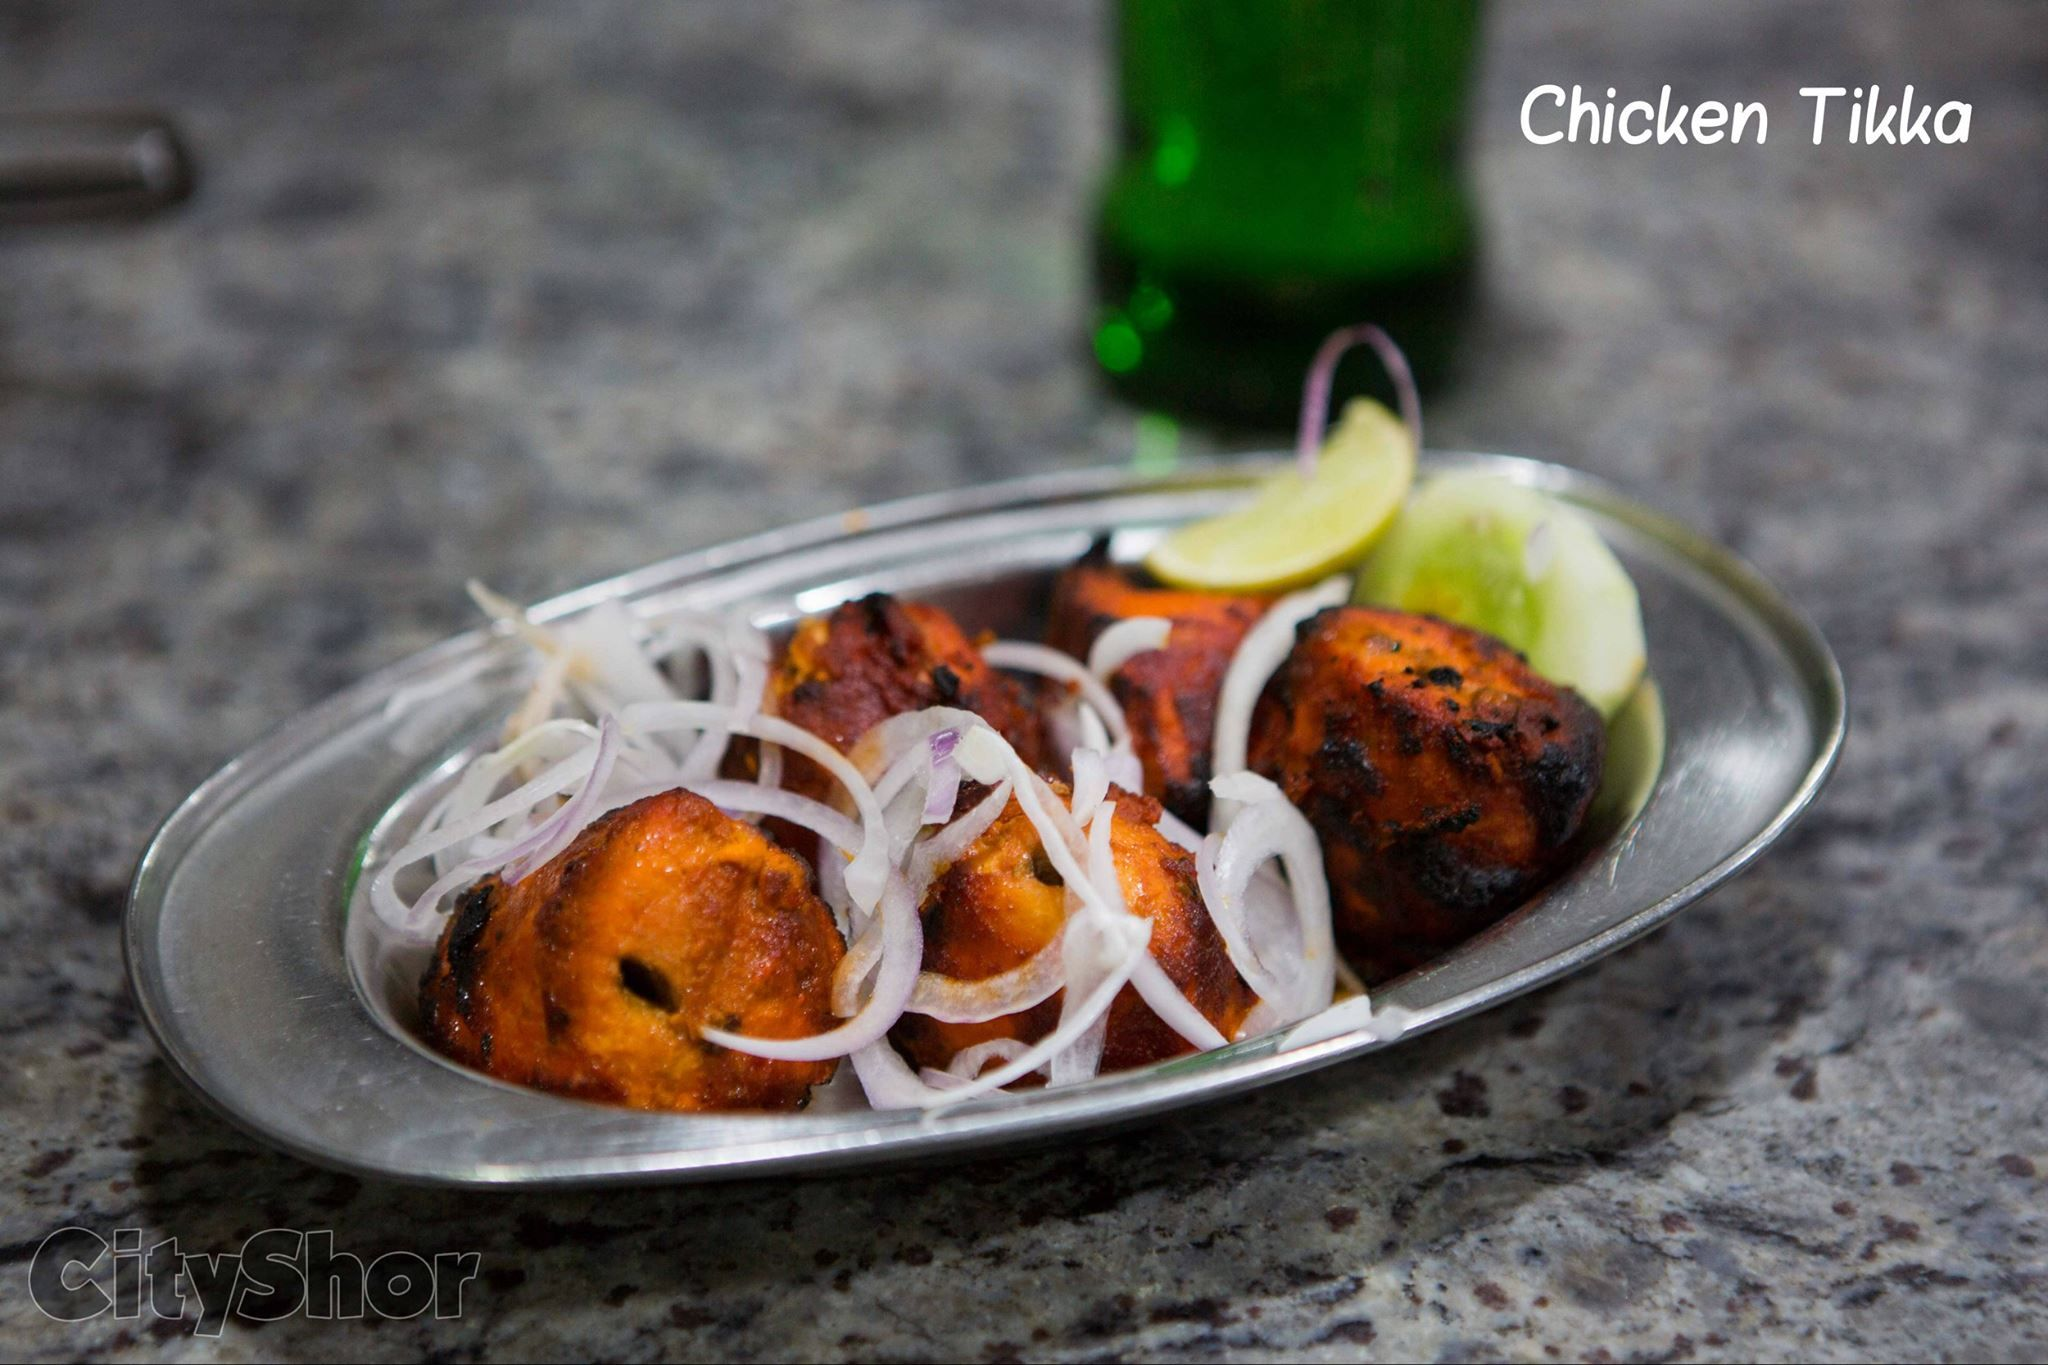 Siddiquekababcentre Does Shine The Brightest Add St Johns Church Road Near Coles Park Frazer Town Bangalore Contact Chicken Tikka Food Cafe Restaurant